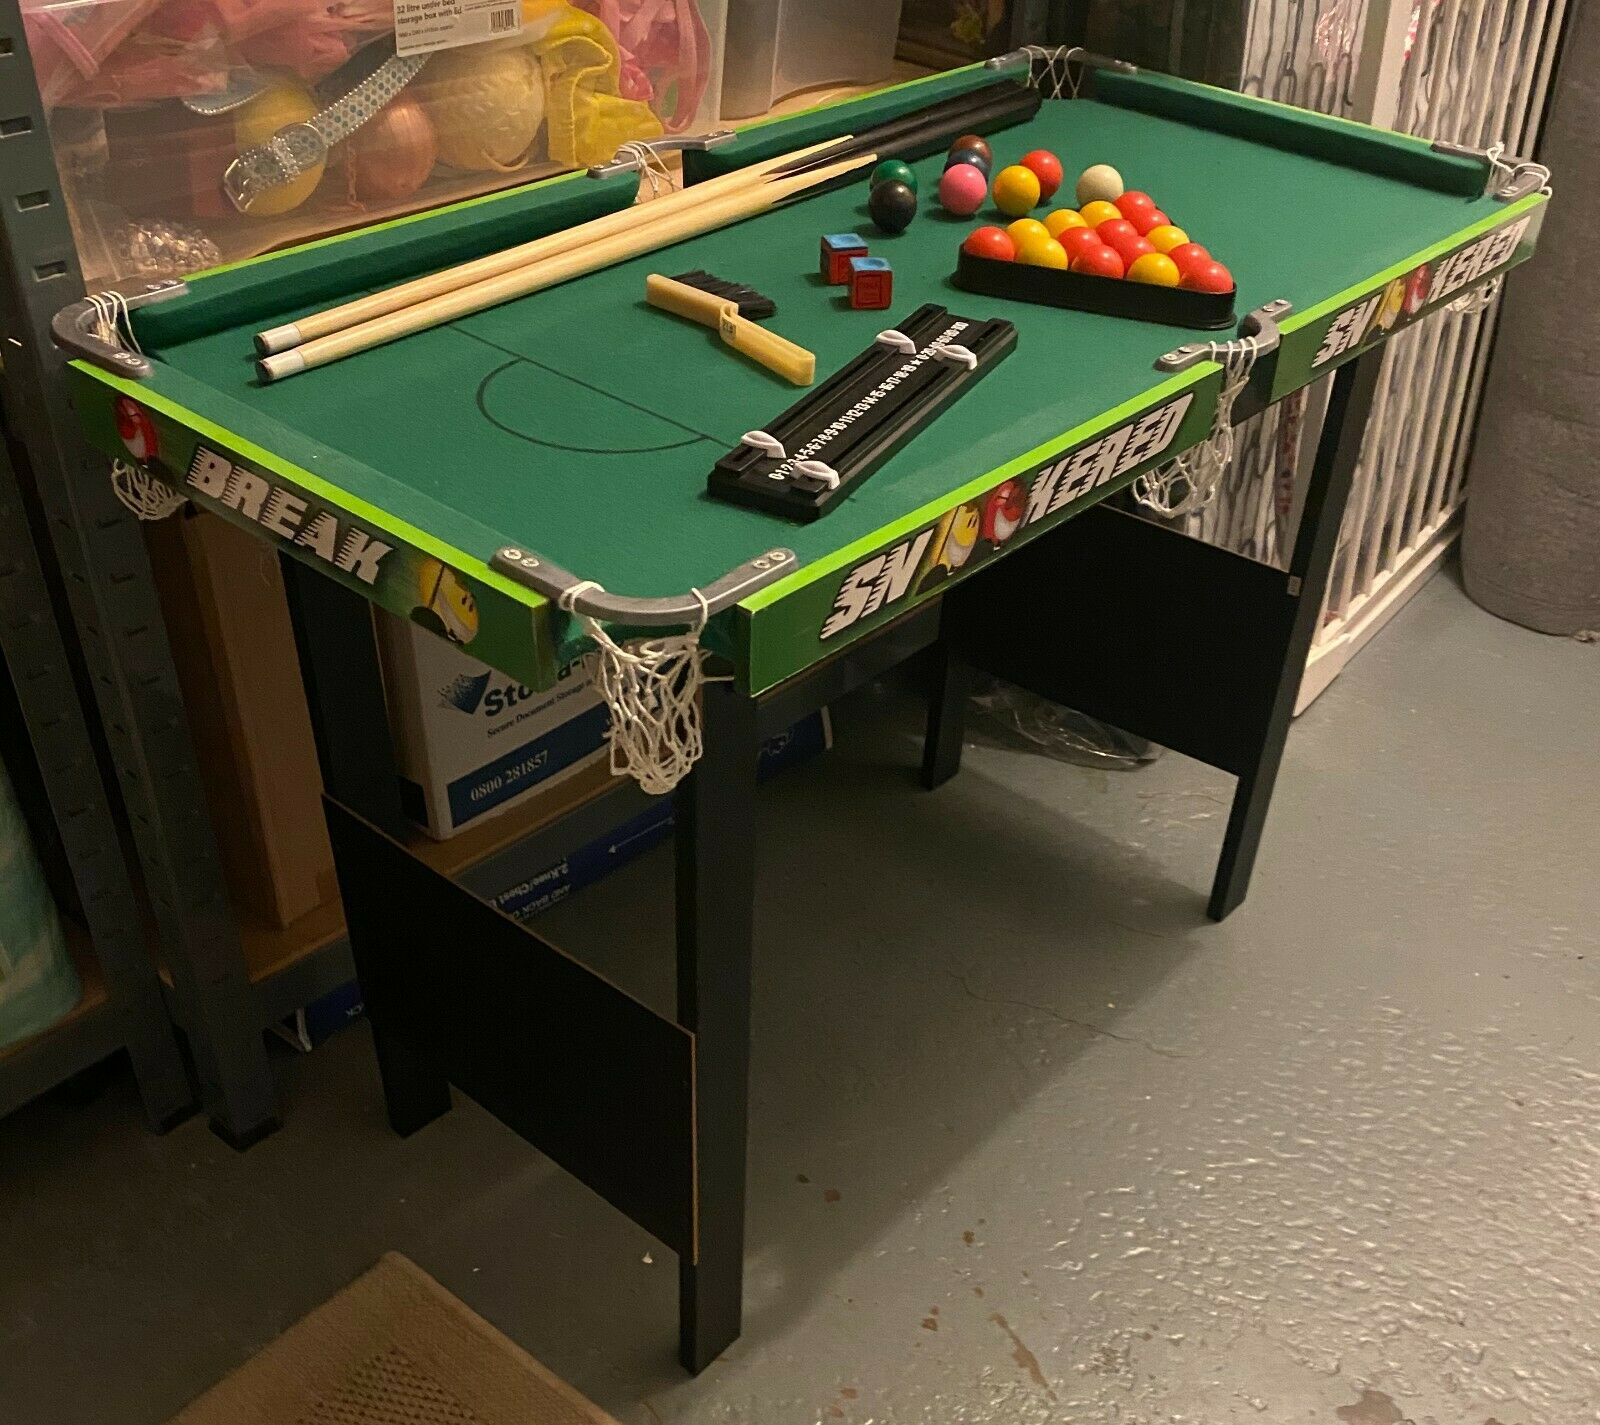 Children's Pool/Snooker Table with Accessories